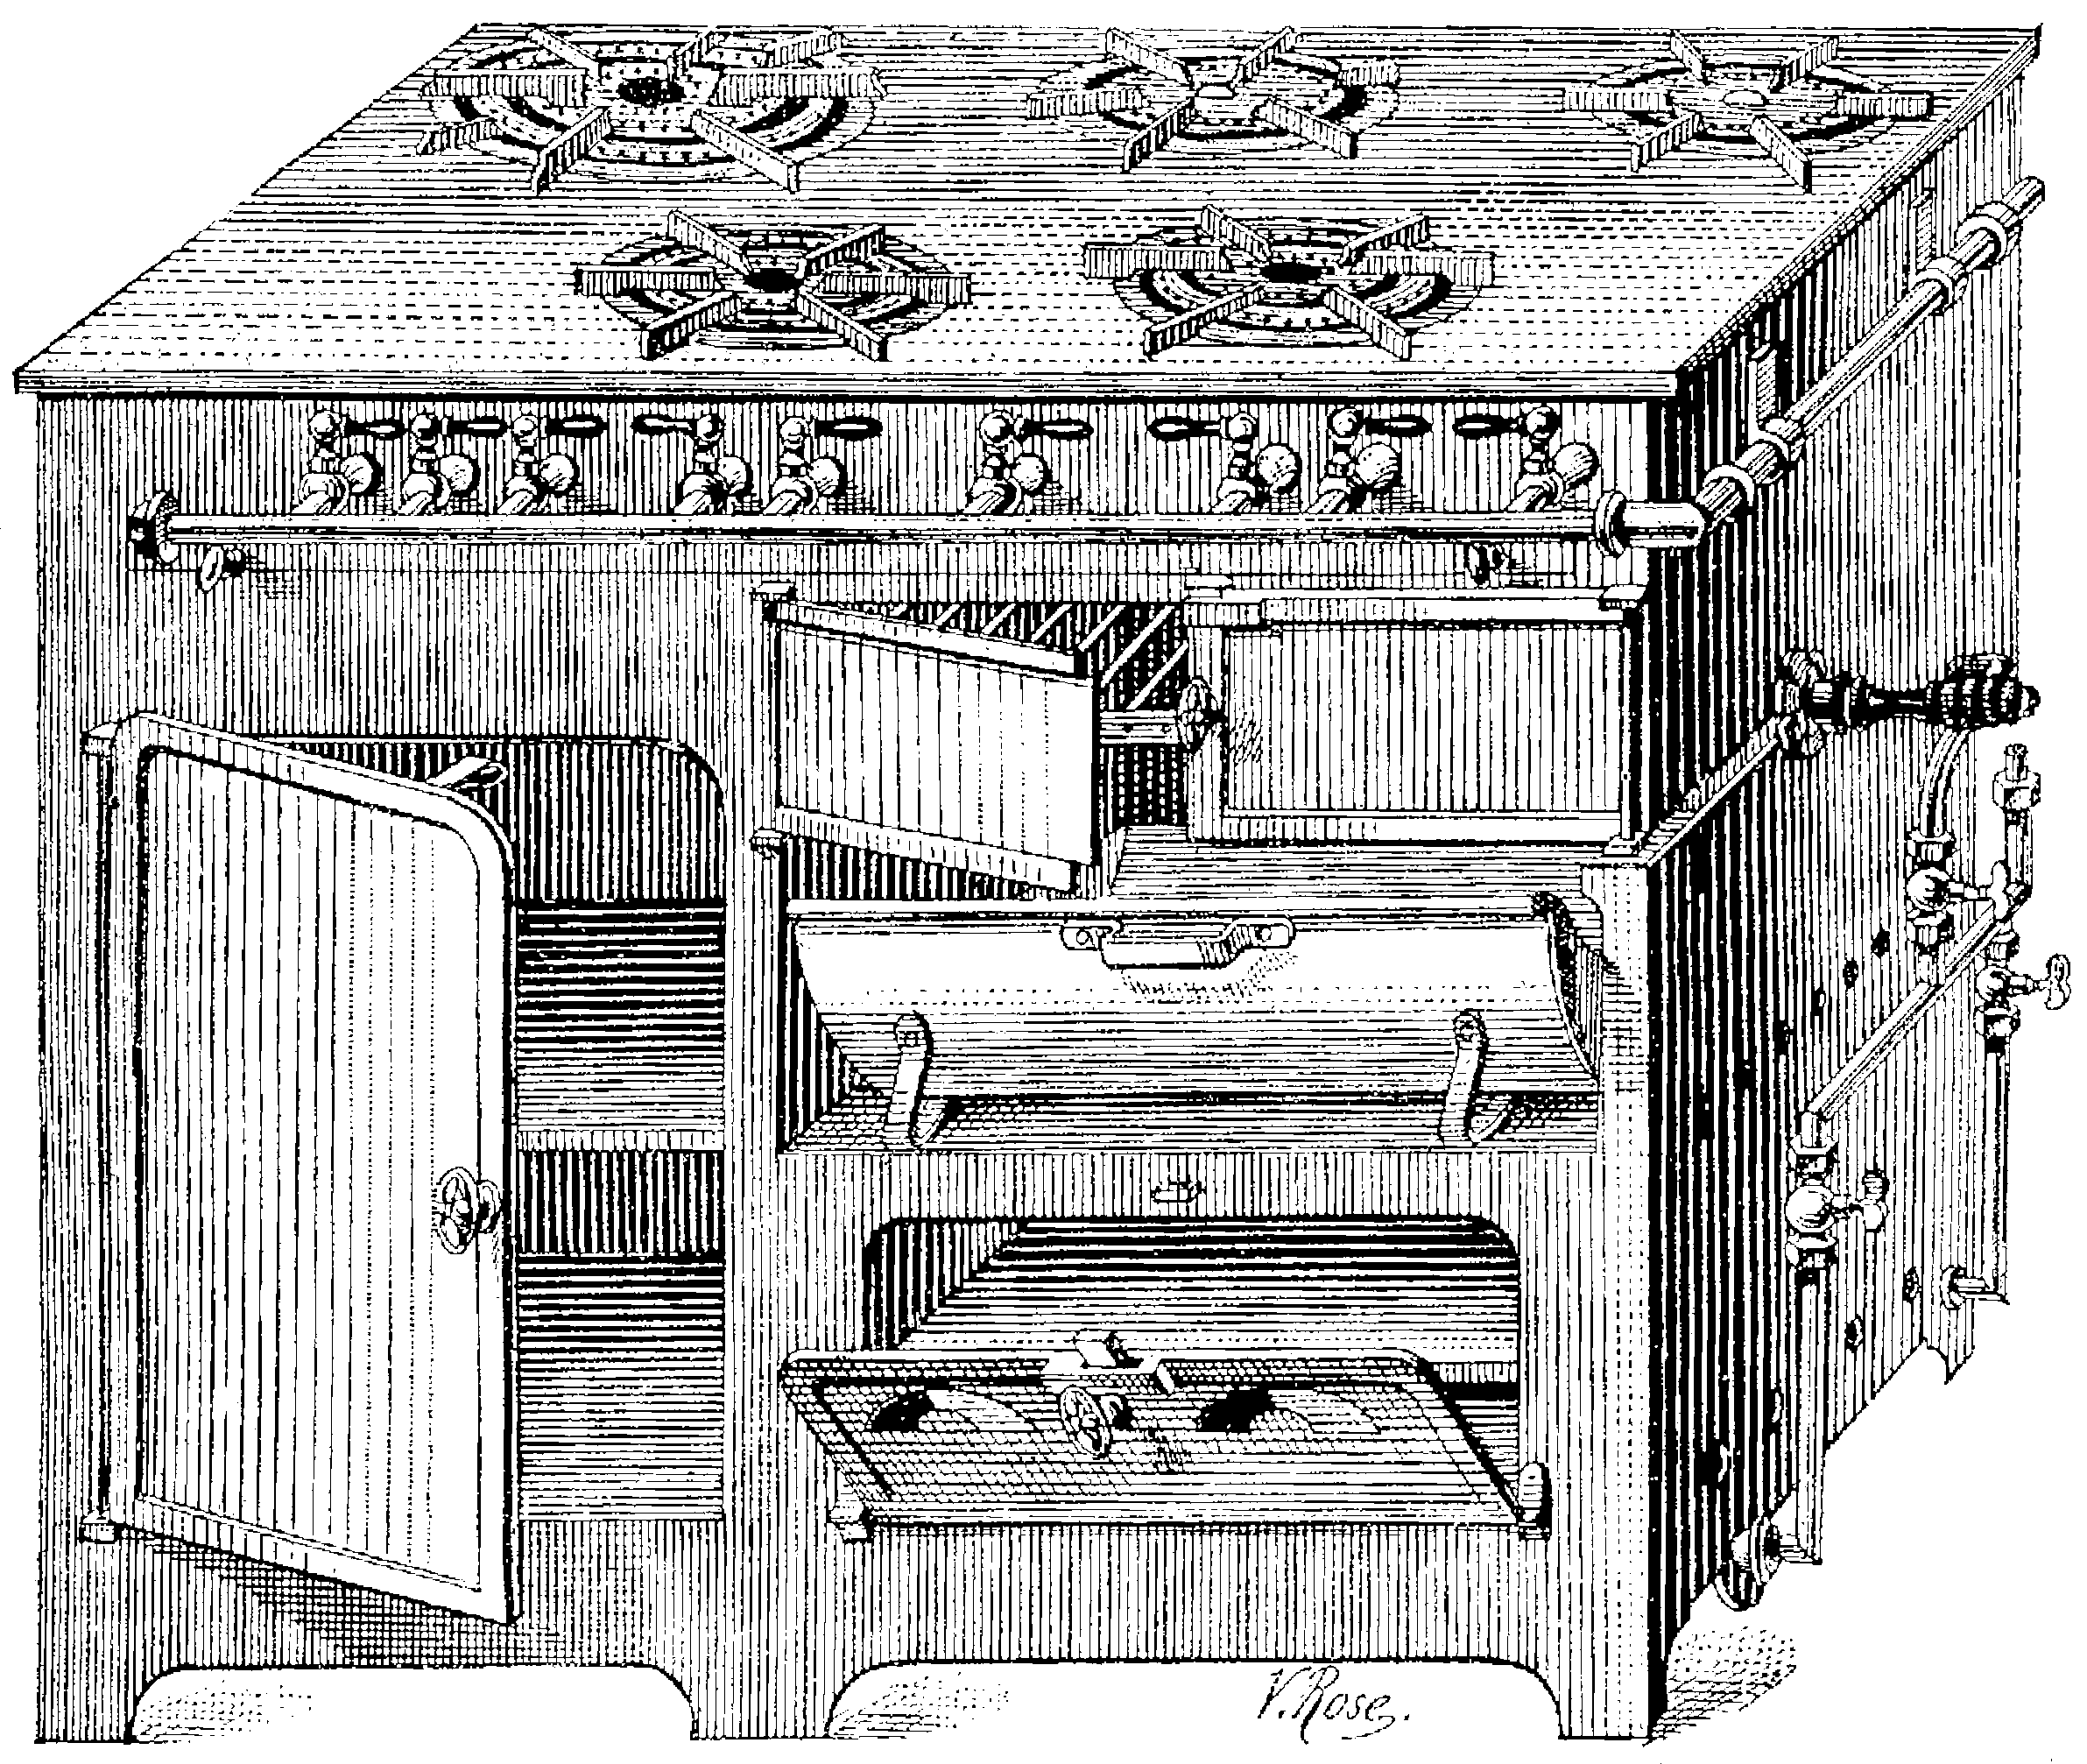 file t6 d551 fig 413 cuisini re au gaz petit mod wikimedia commons. Black Bedroom Furniture Sets. Home Design Ideas